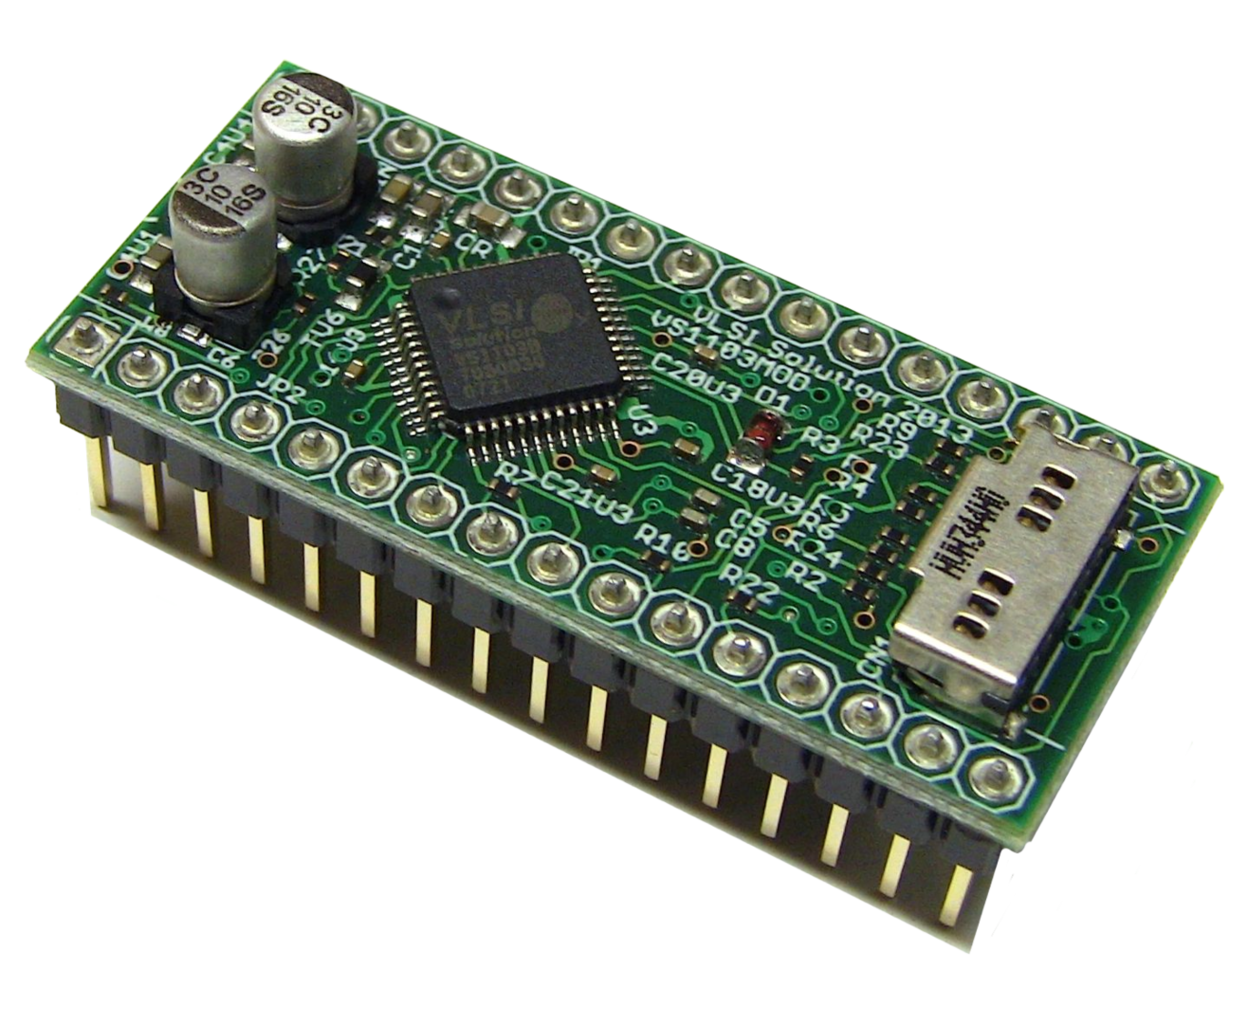 VSMD301V060 VS1103 Module, 2MB Flash.